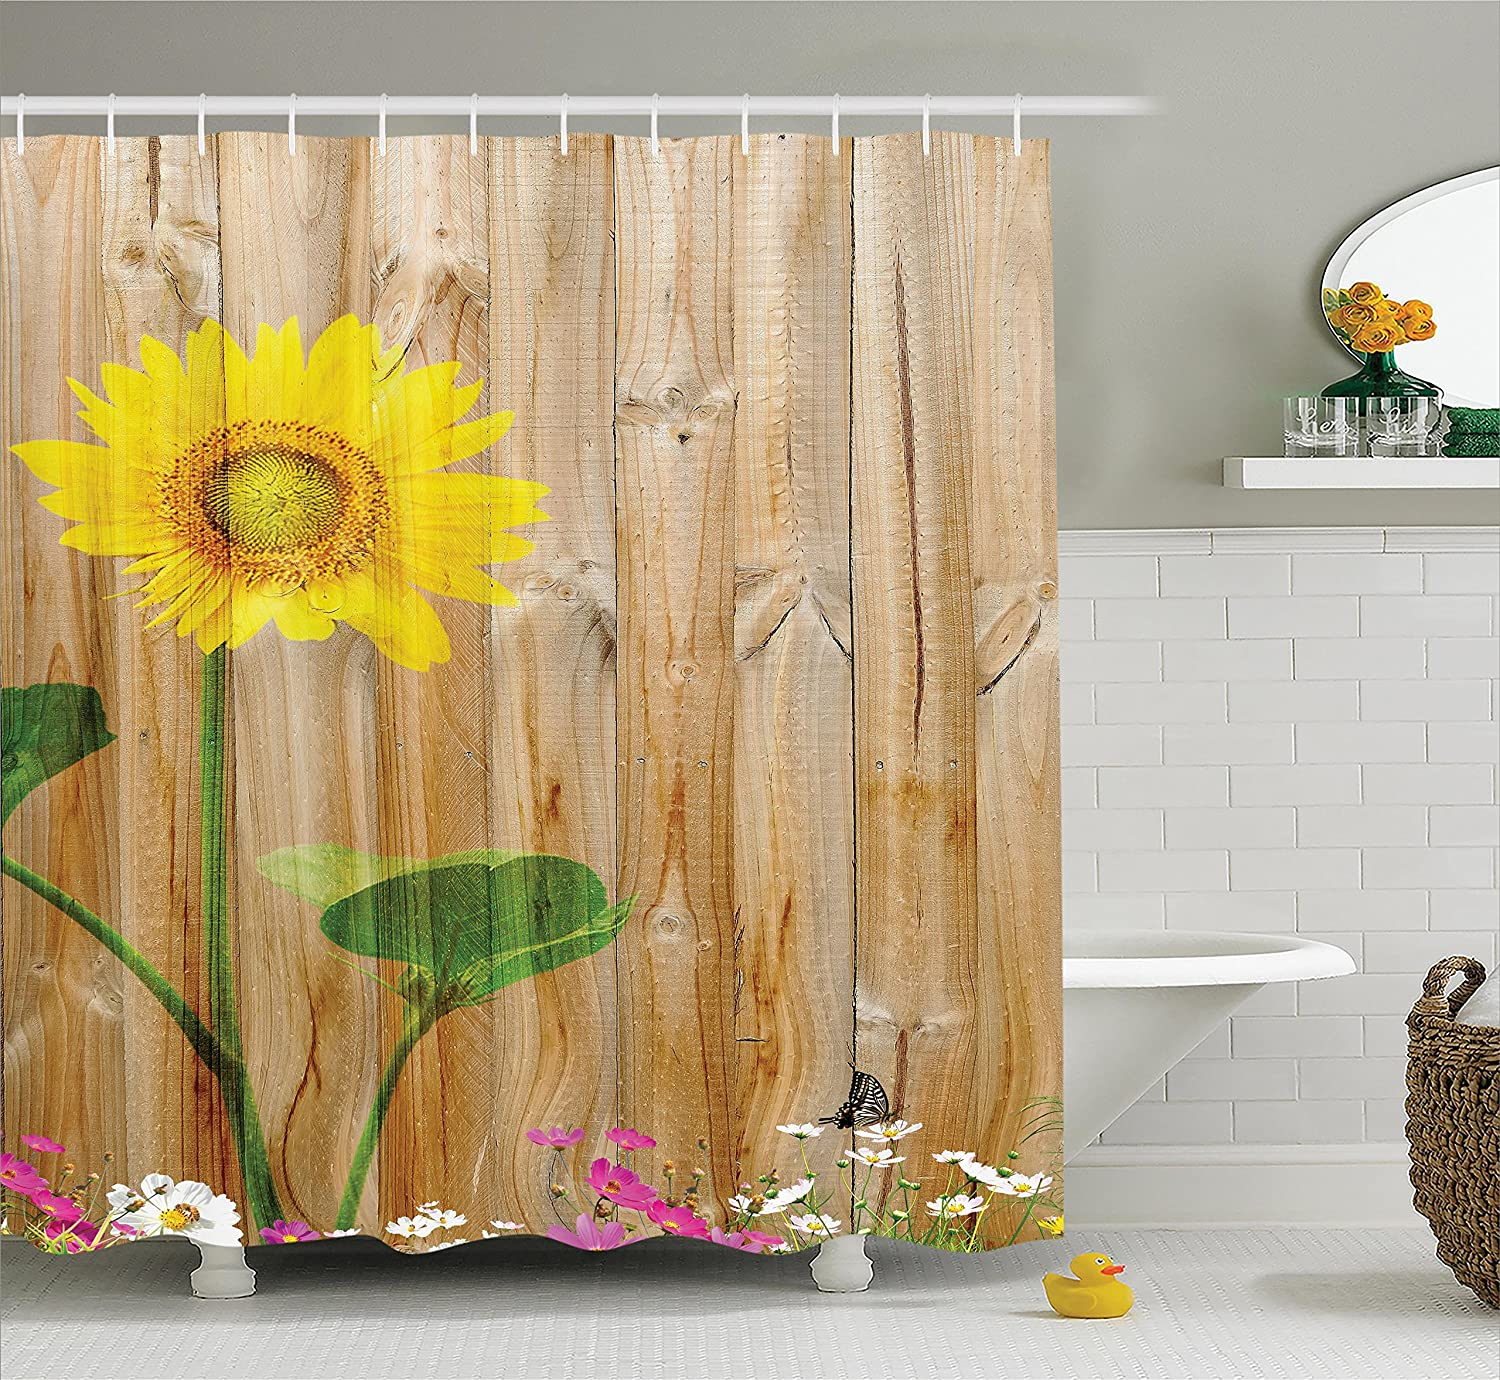 Sunflower bathroom accessories -  Sunflower Shower Curtain Set With Hooks By Ambesonne Sunflower Painting On Wooden Background Vertical Timber